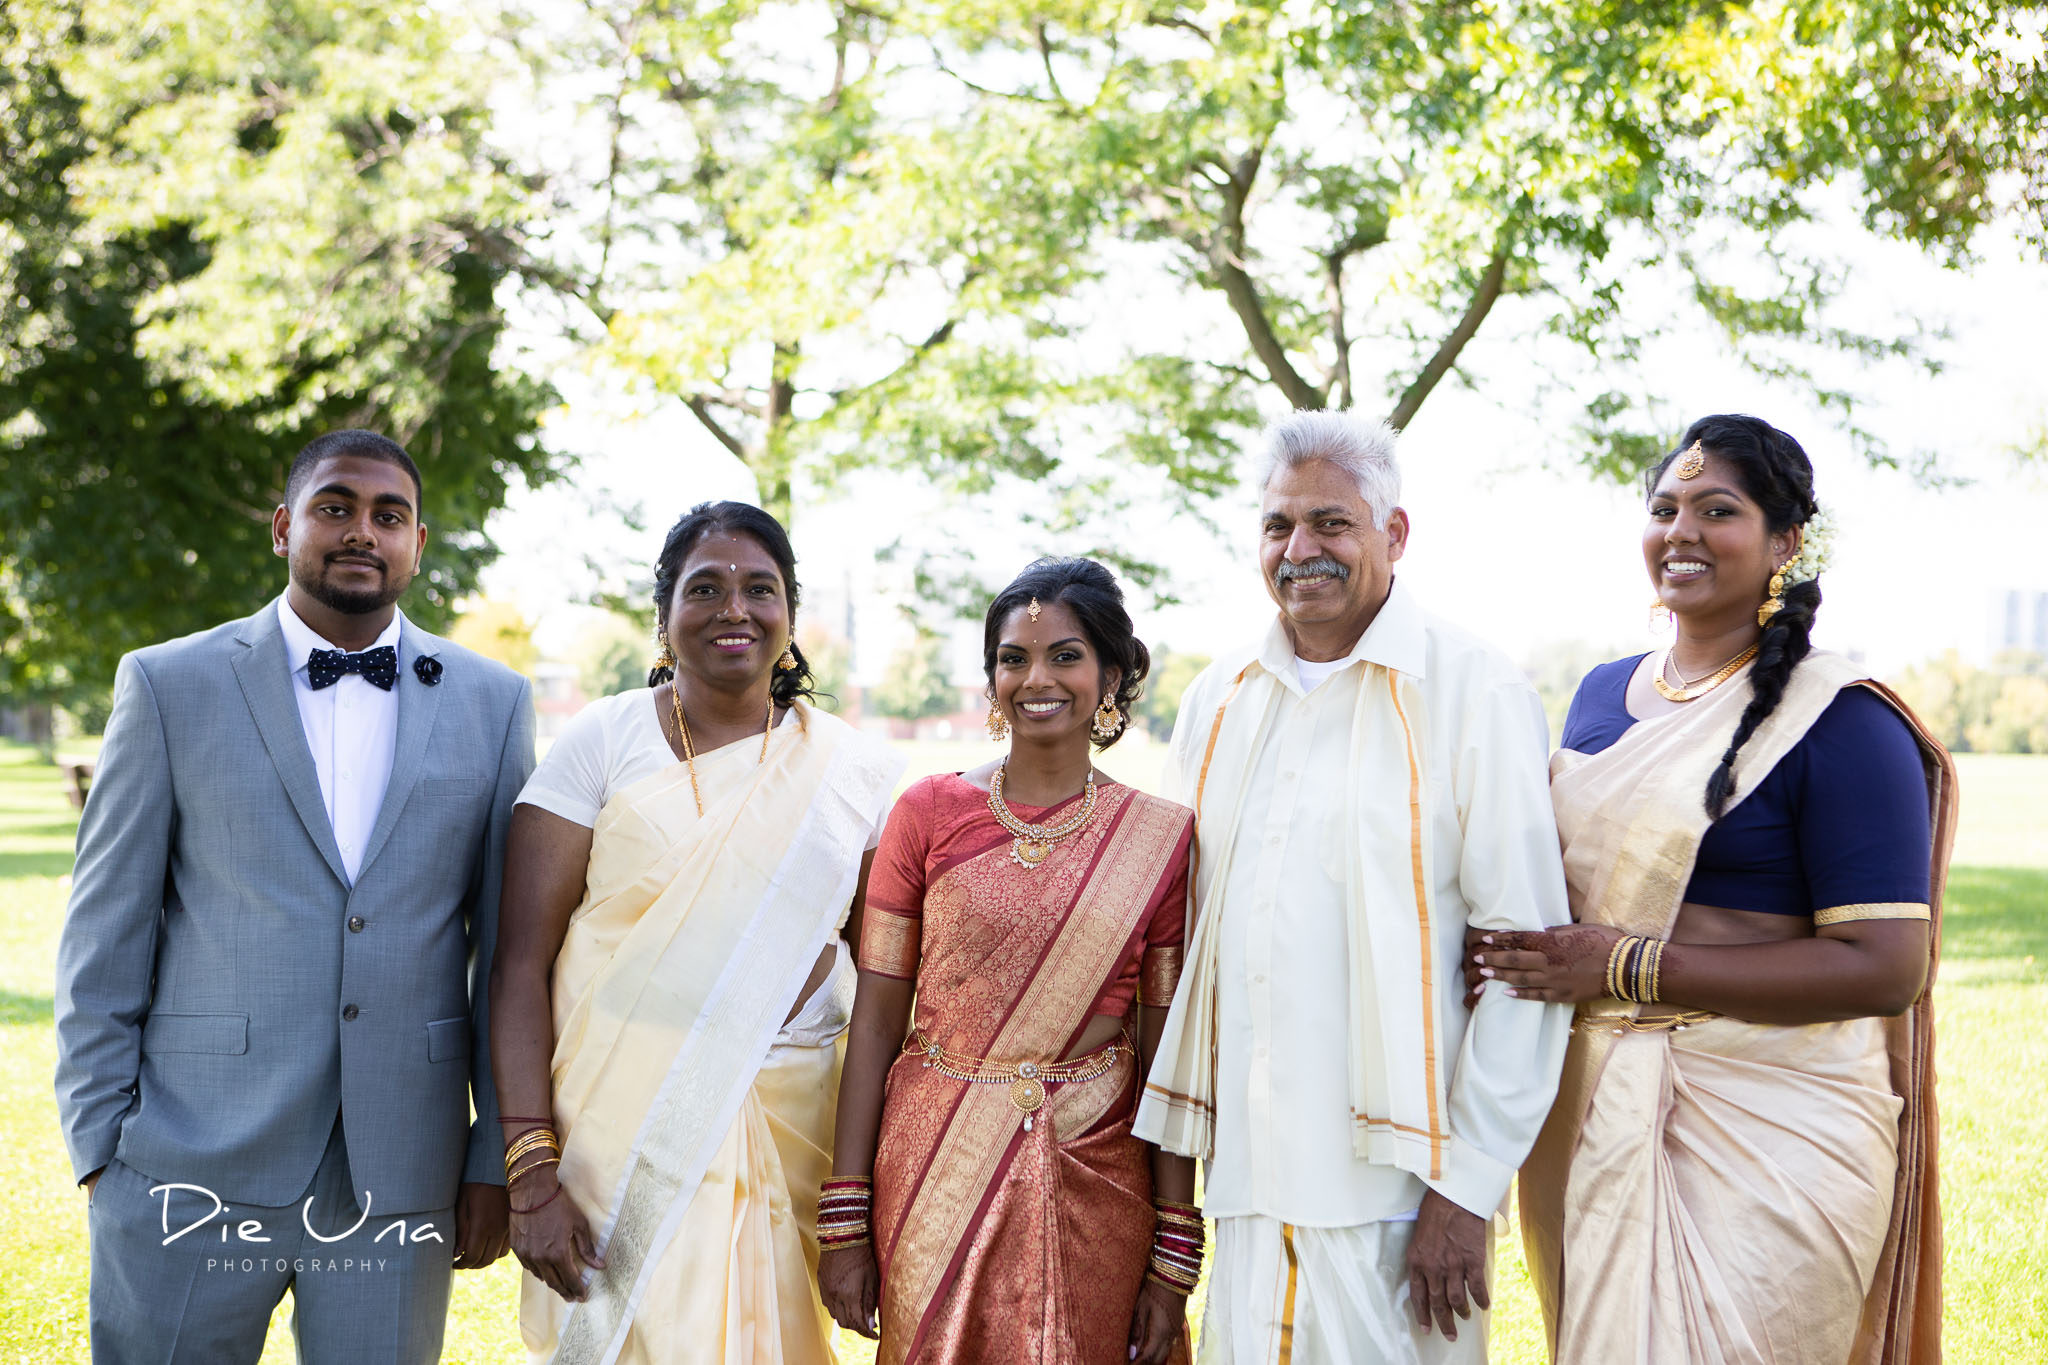 wedding portrait of Sri Lankan bride's family in Toronto.jpg